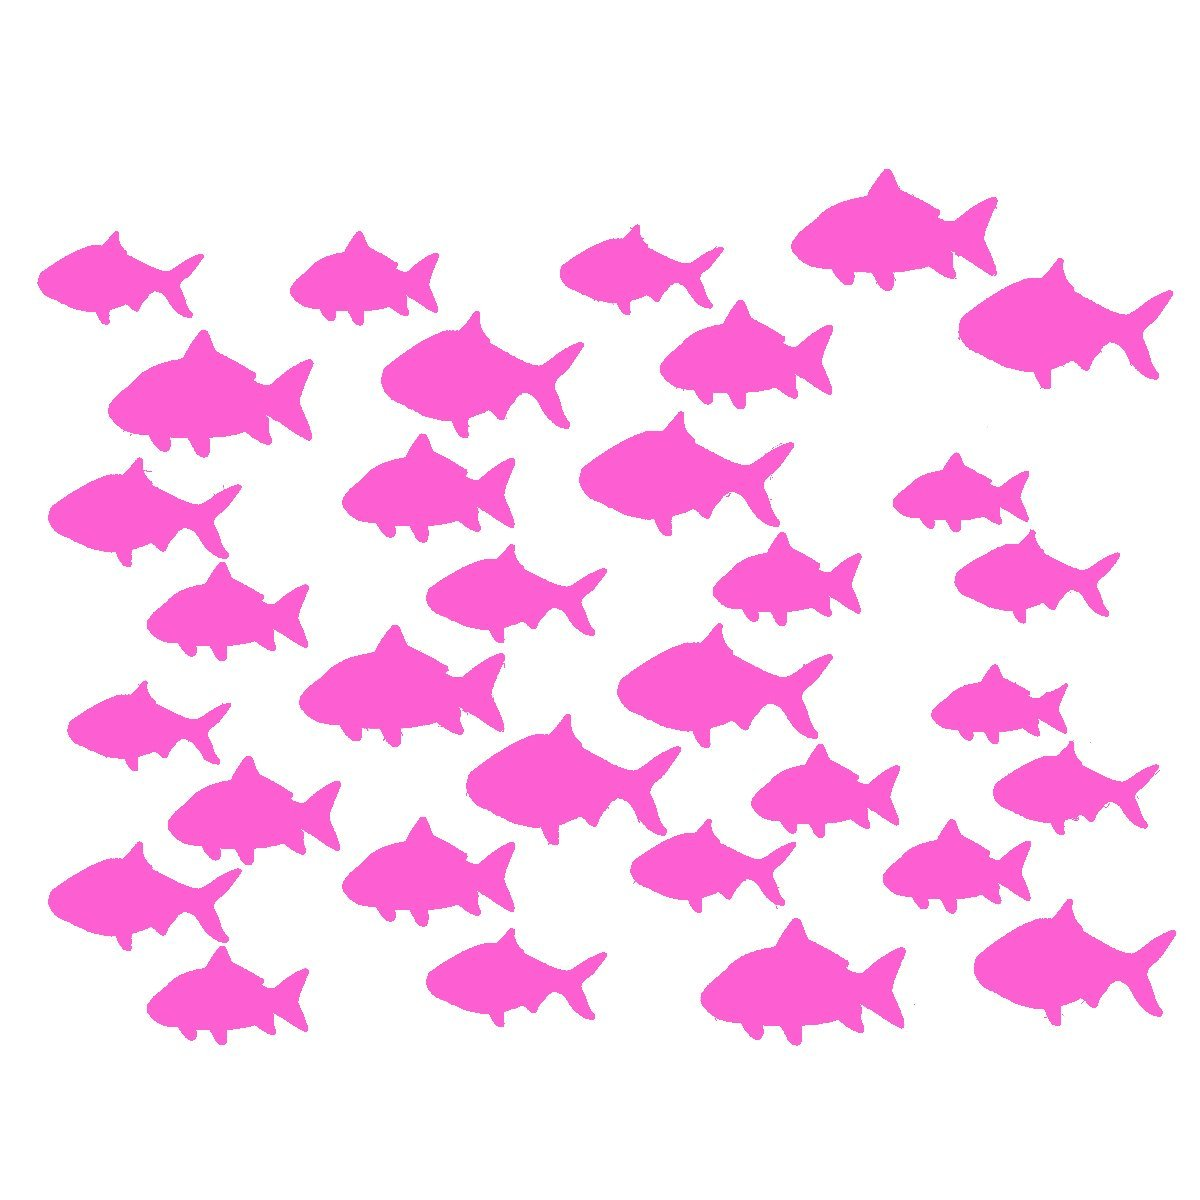 VWAQ Aquatic Animal Stickers, School Of Fish Wall Decor - Peel and Stick Decal, 32 Pack VWAQ (White)